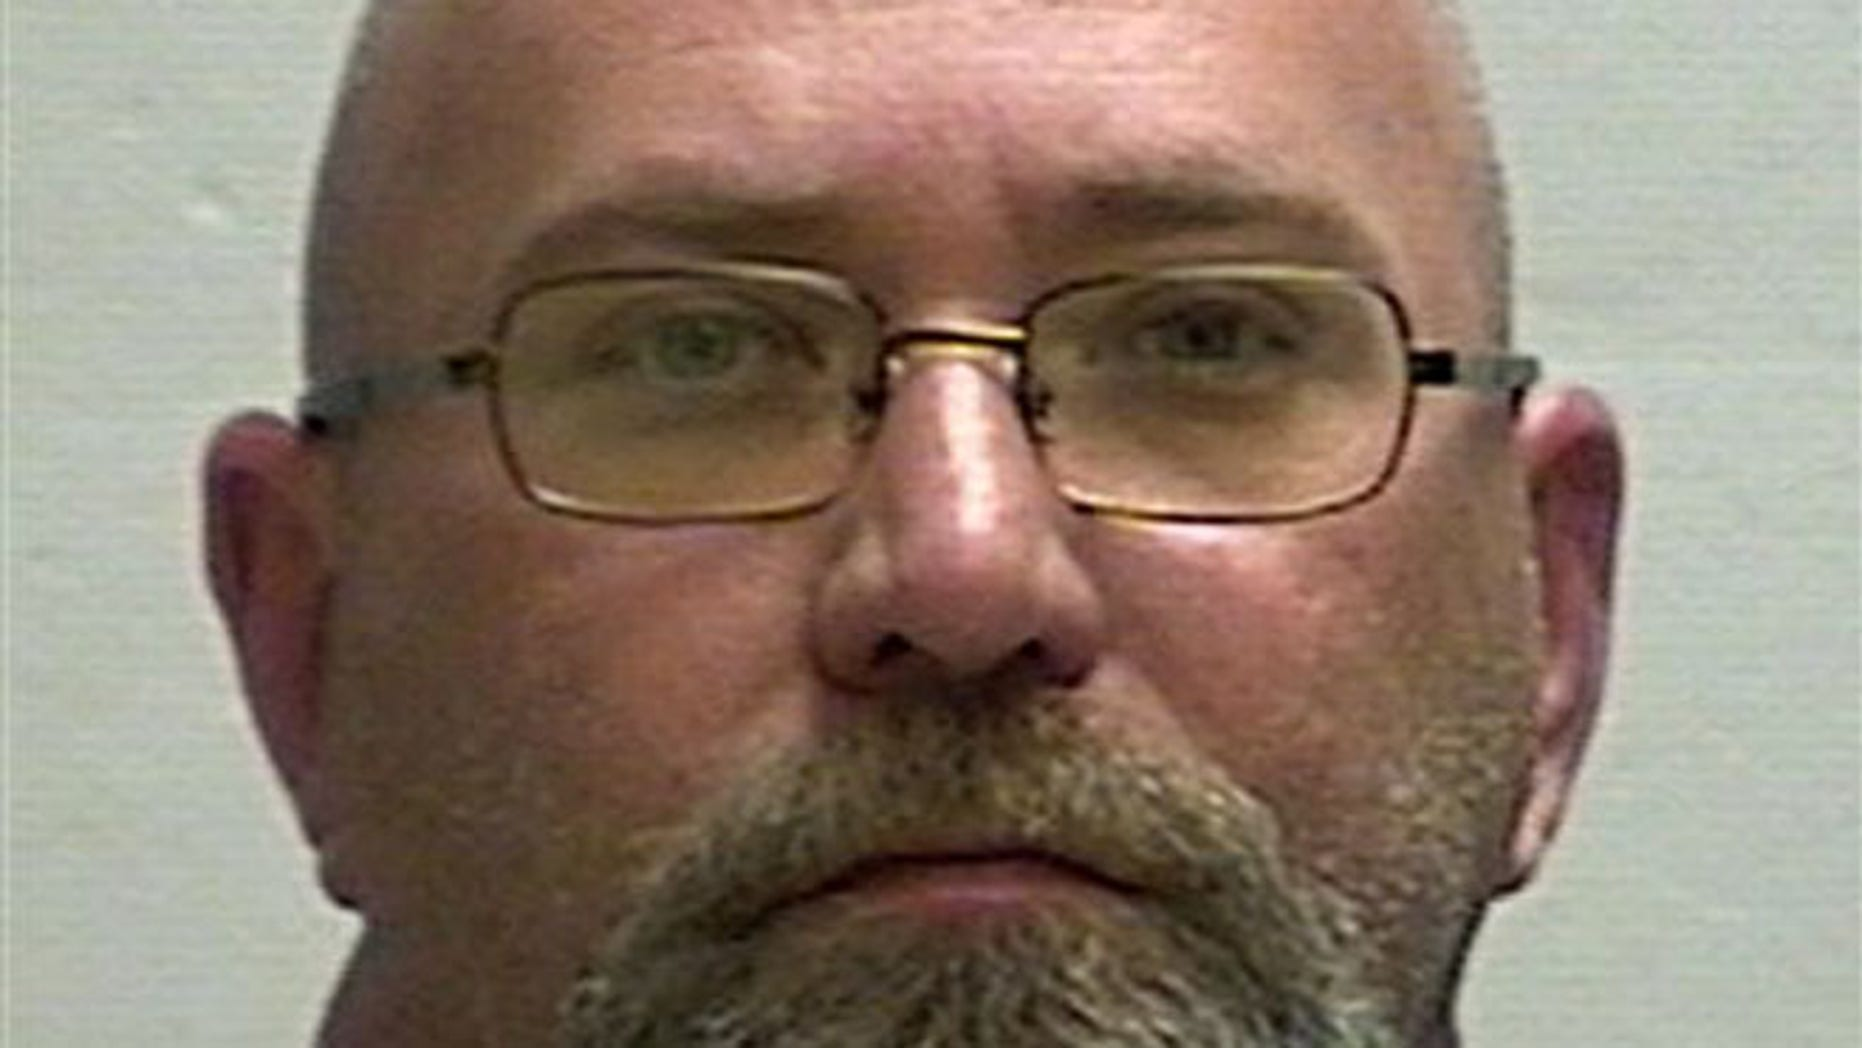 This undated file photo provided by the Clay County, Mo., Detention Center shows Rev. Shawn Francis Ratigan.